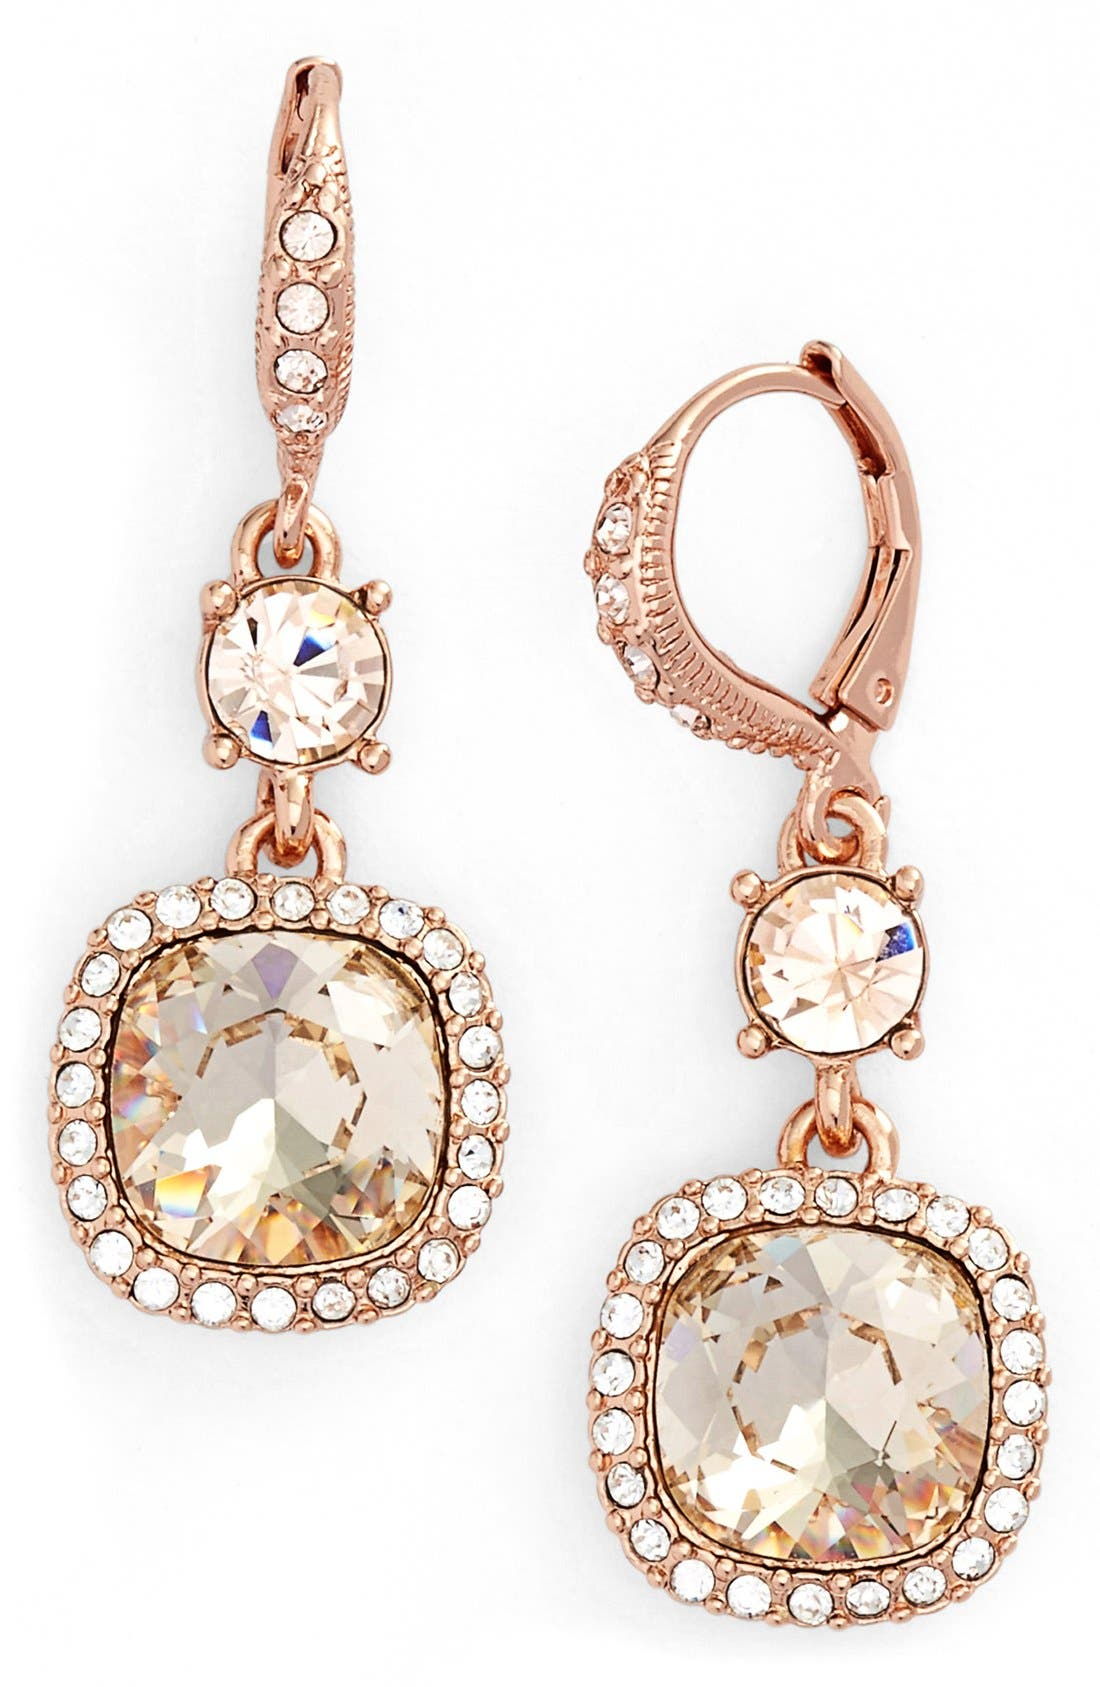 Givenchy 'Legacy' Drop Earrings